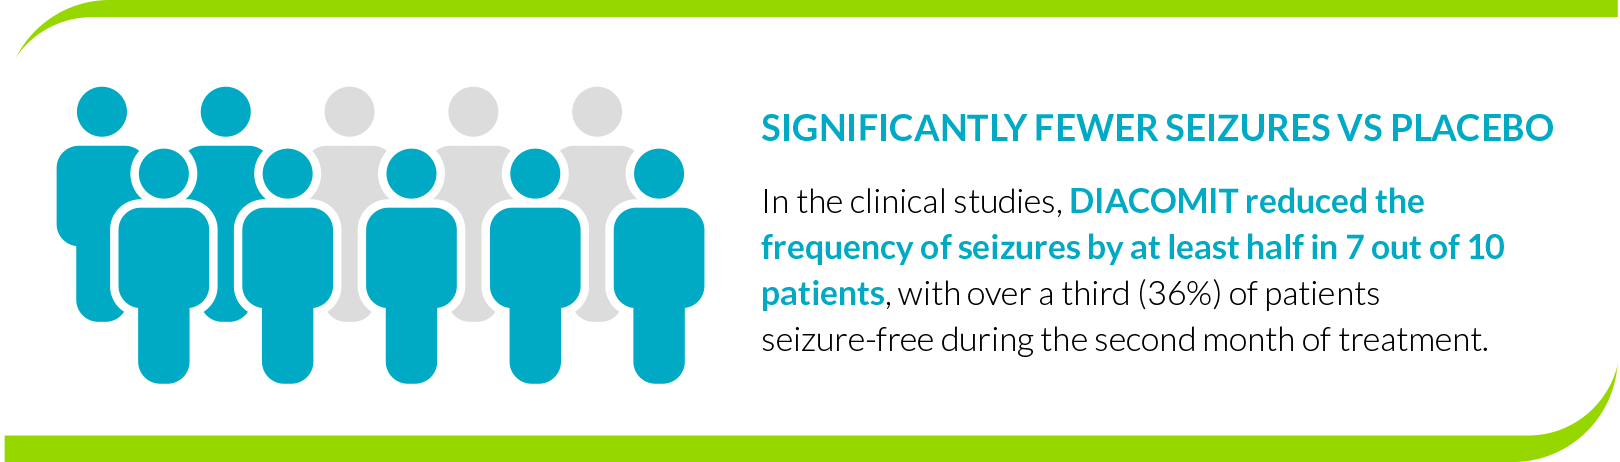 DIACOMIT reduced the frequency of seizures by at least half in 7 out of 10 patients